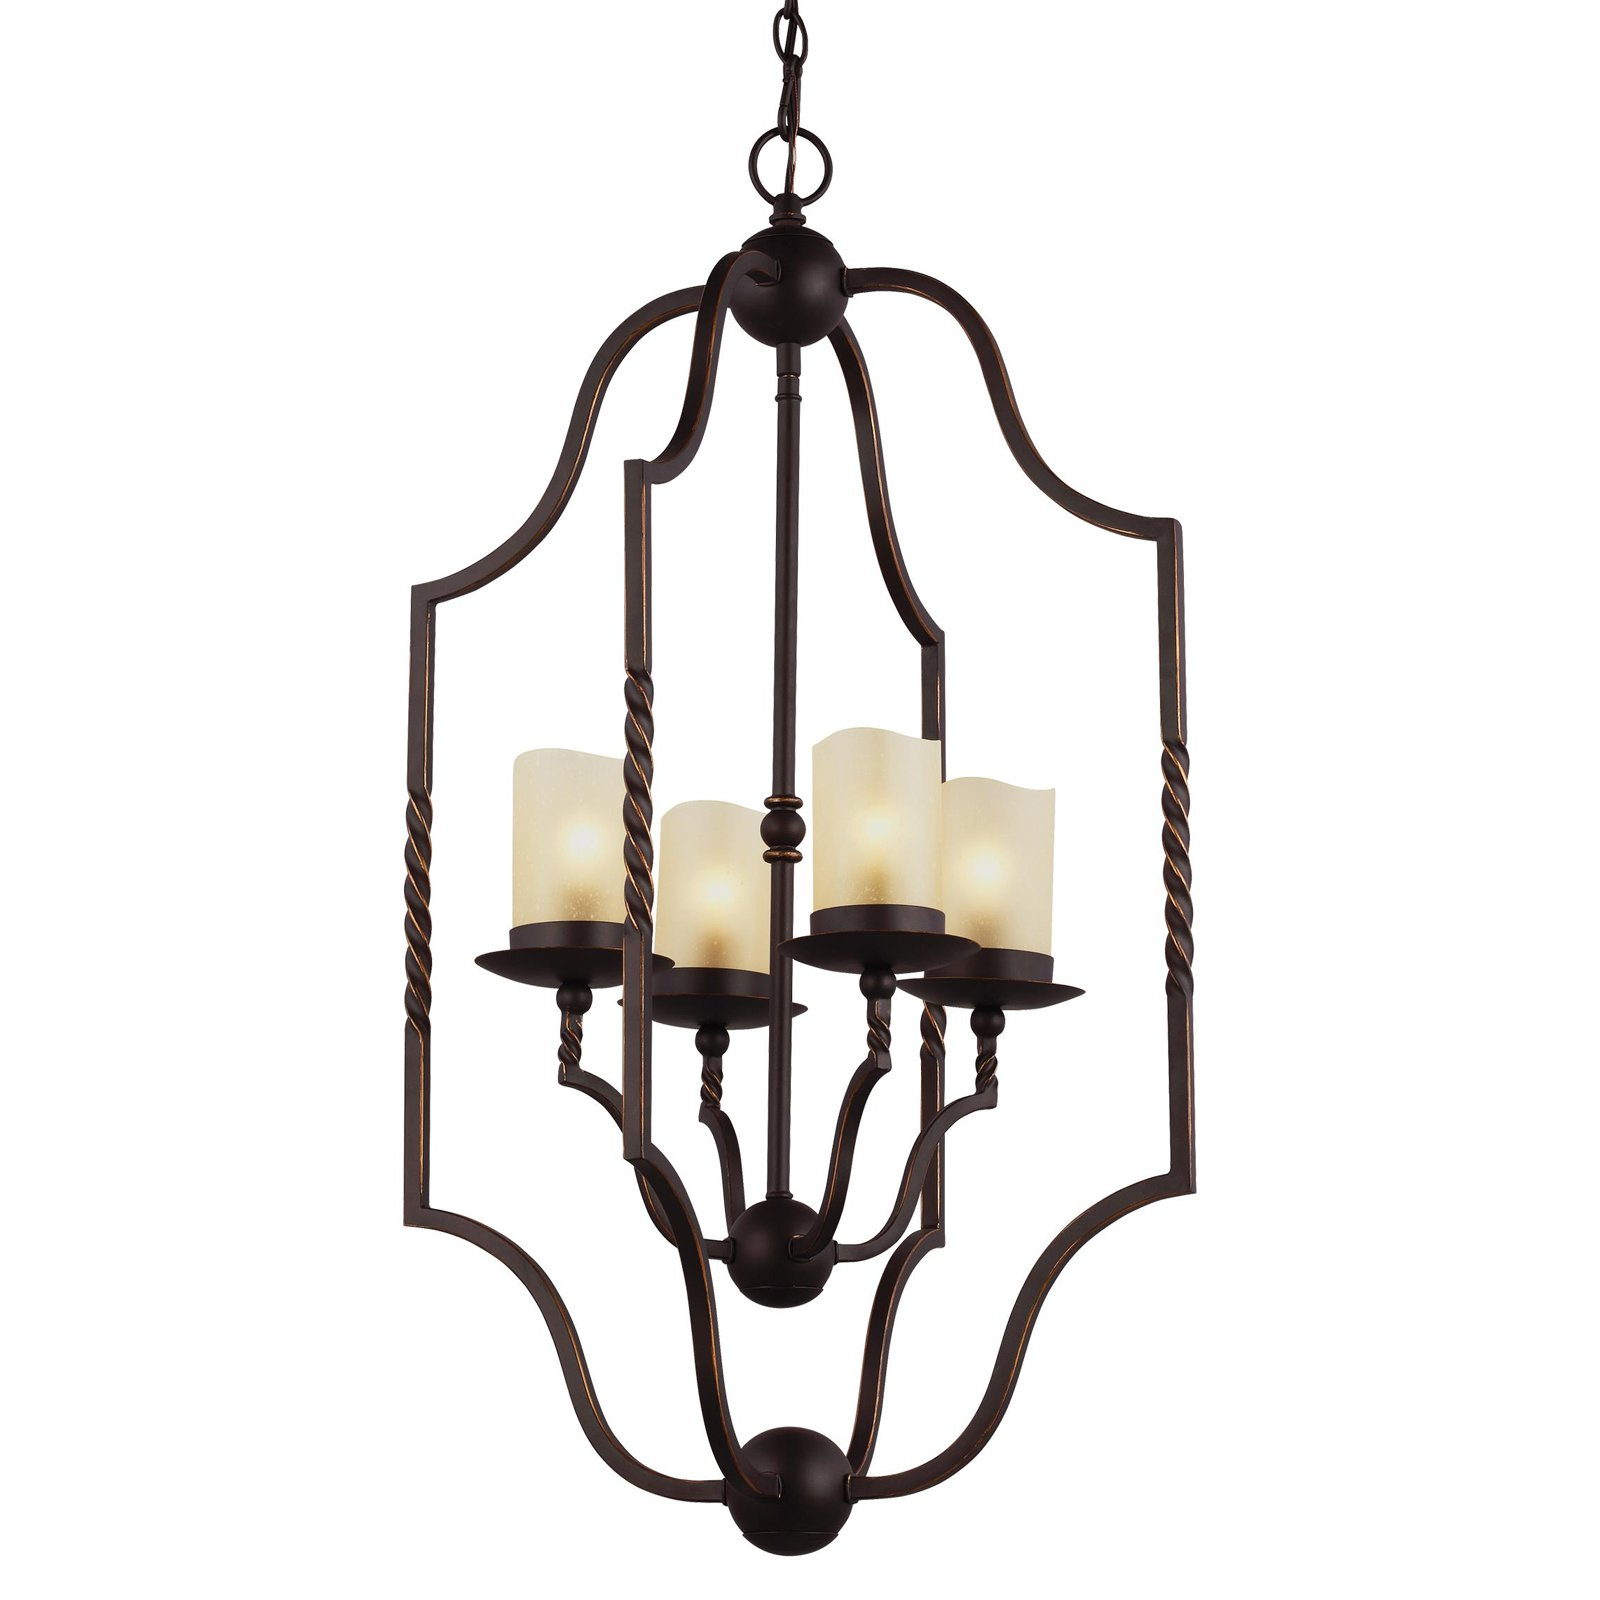 Sea Gull Lighting Trempealeau 5110604-191 4-Light Hall / Foyer Light